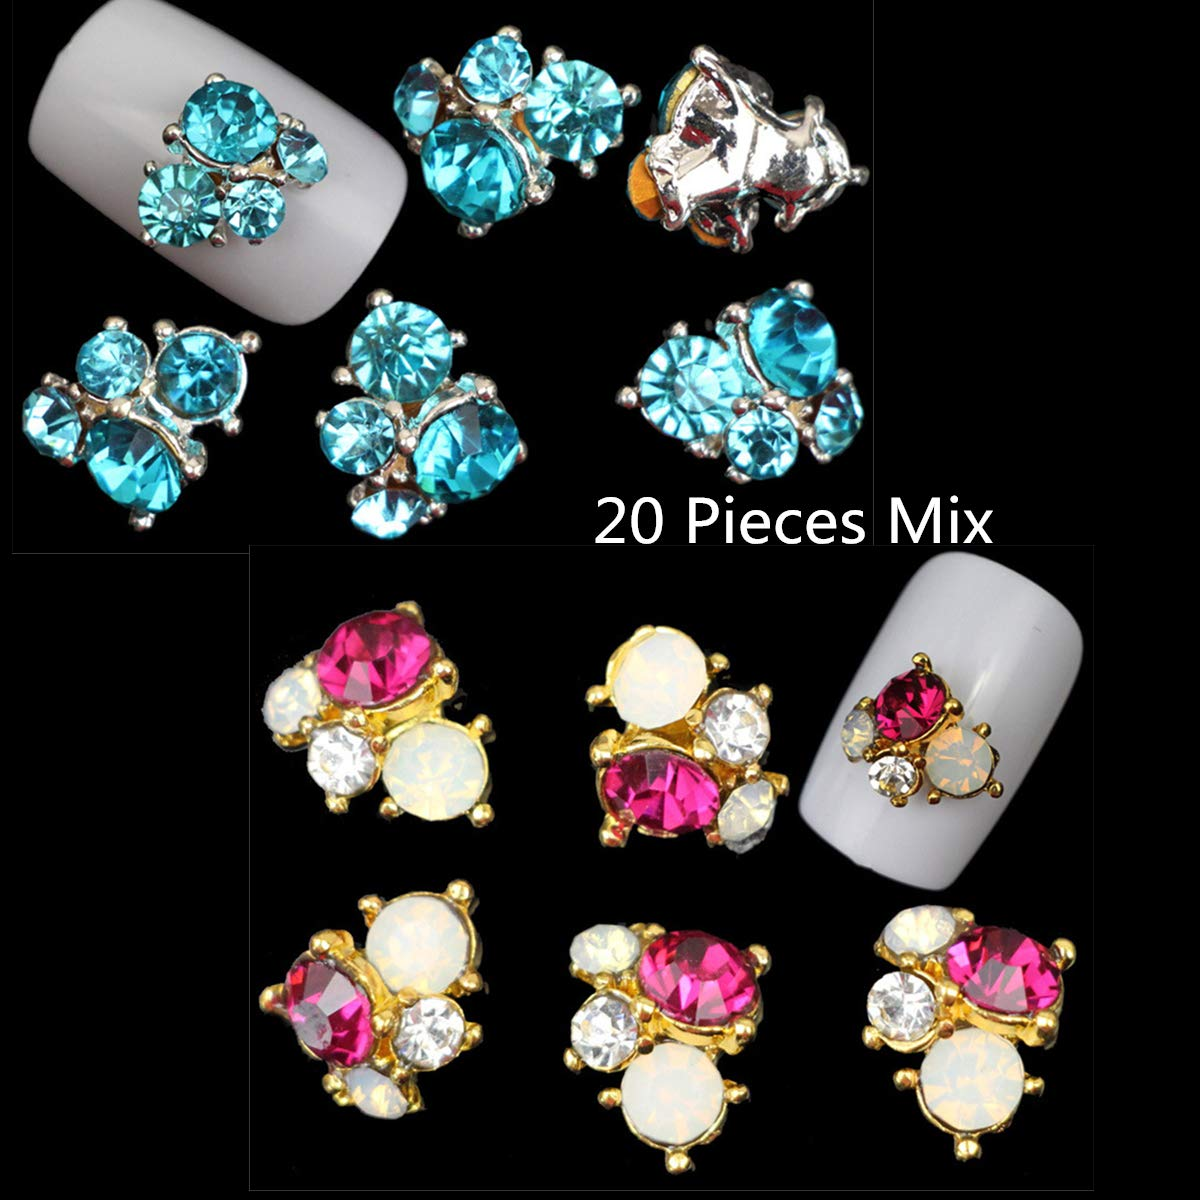 Mezerdoo 20Pcs Mix 3D Charms Glass Crystal Diamonds Nail Art Design Stone Decorations Strass Jewelry DIY Nail Art Rhinestones Flower Nail Decoration Gems Sticker